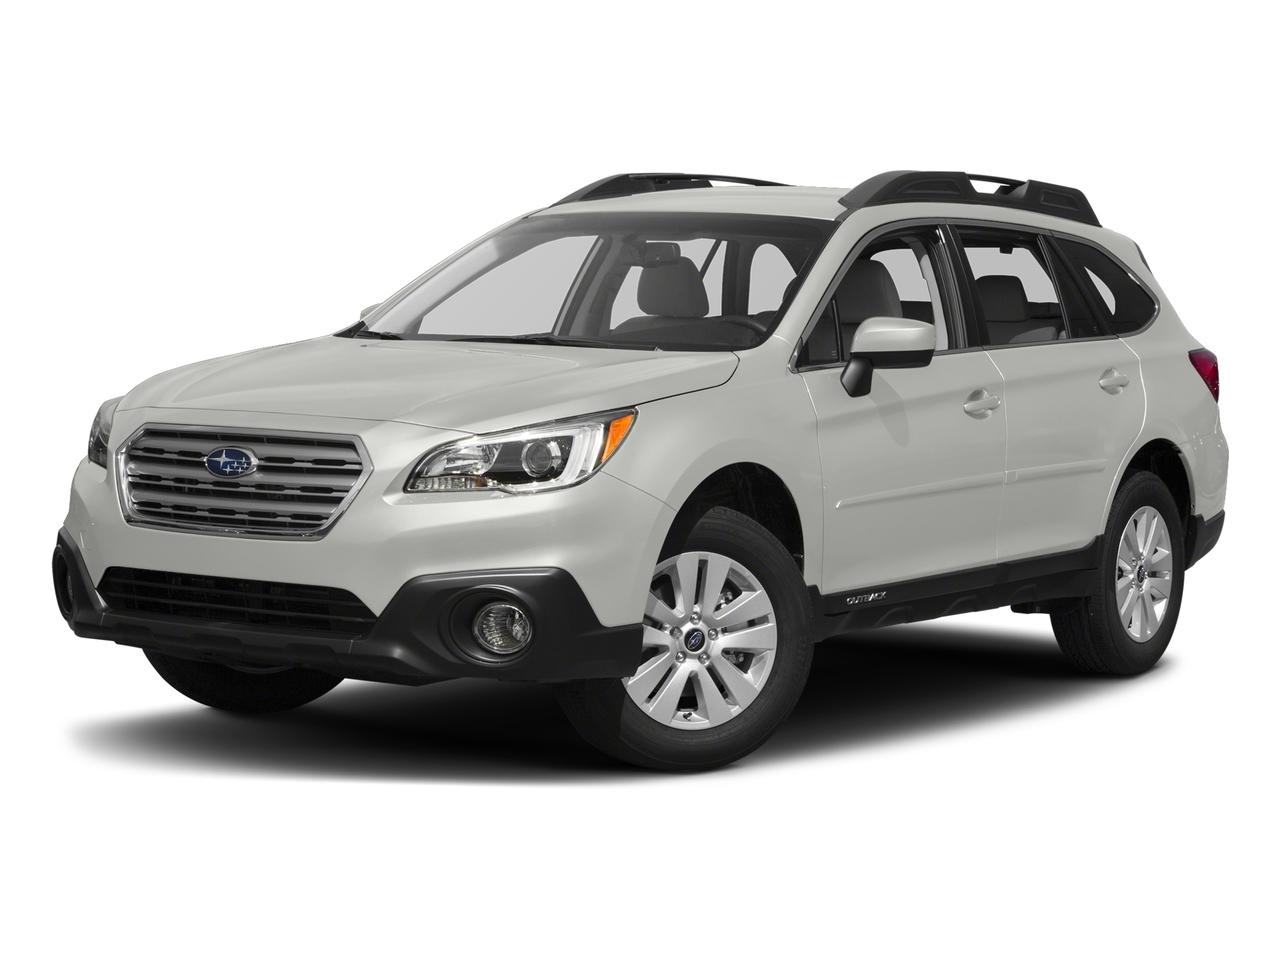 2016 Subaru Outback Vehicle Photo in Cape May Court House, NJ 08210